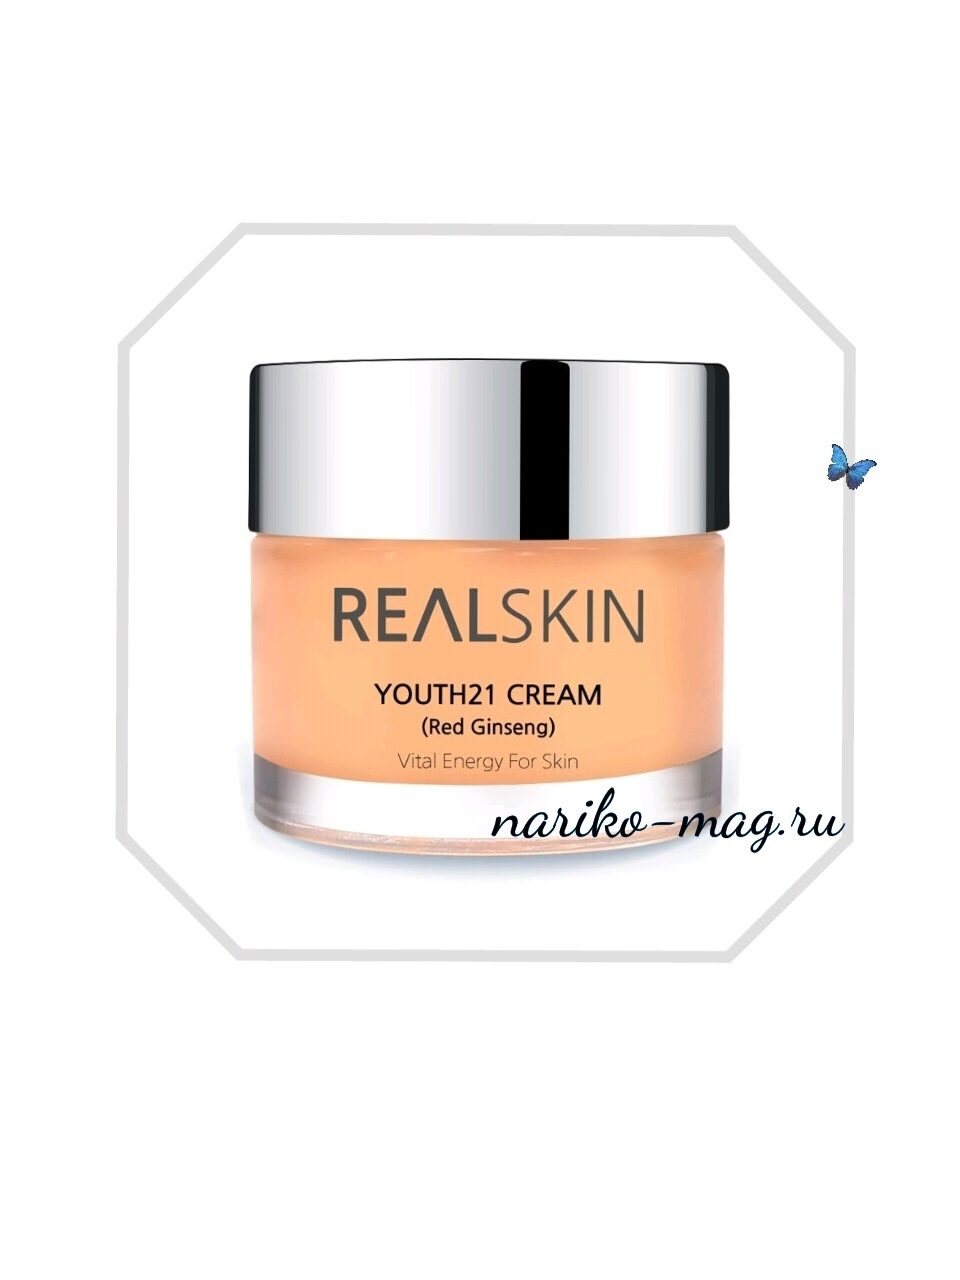 Крем для лица REALSKIN Youth 21 Cream Red ginseng, 50 гр.